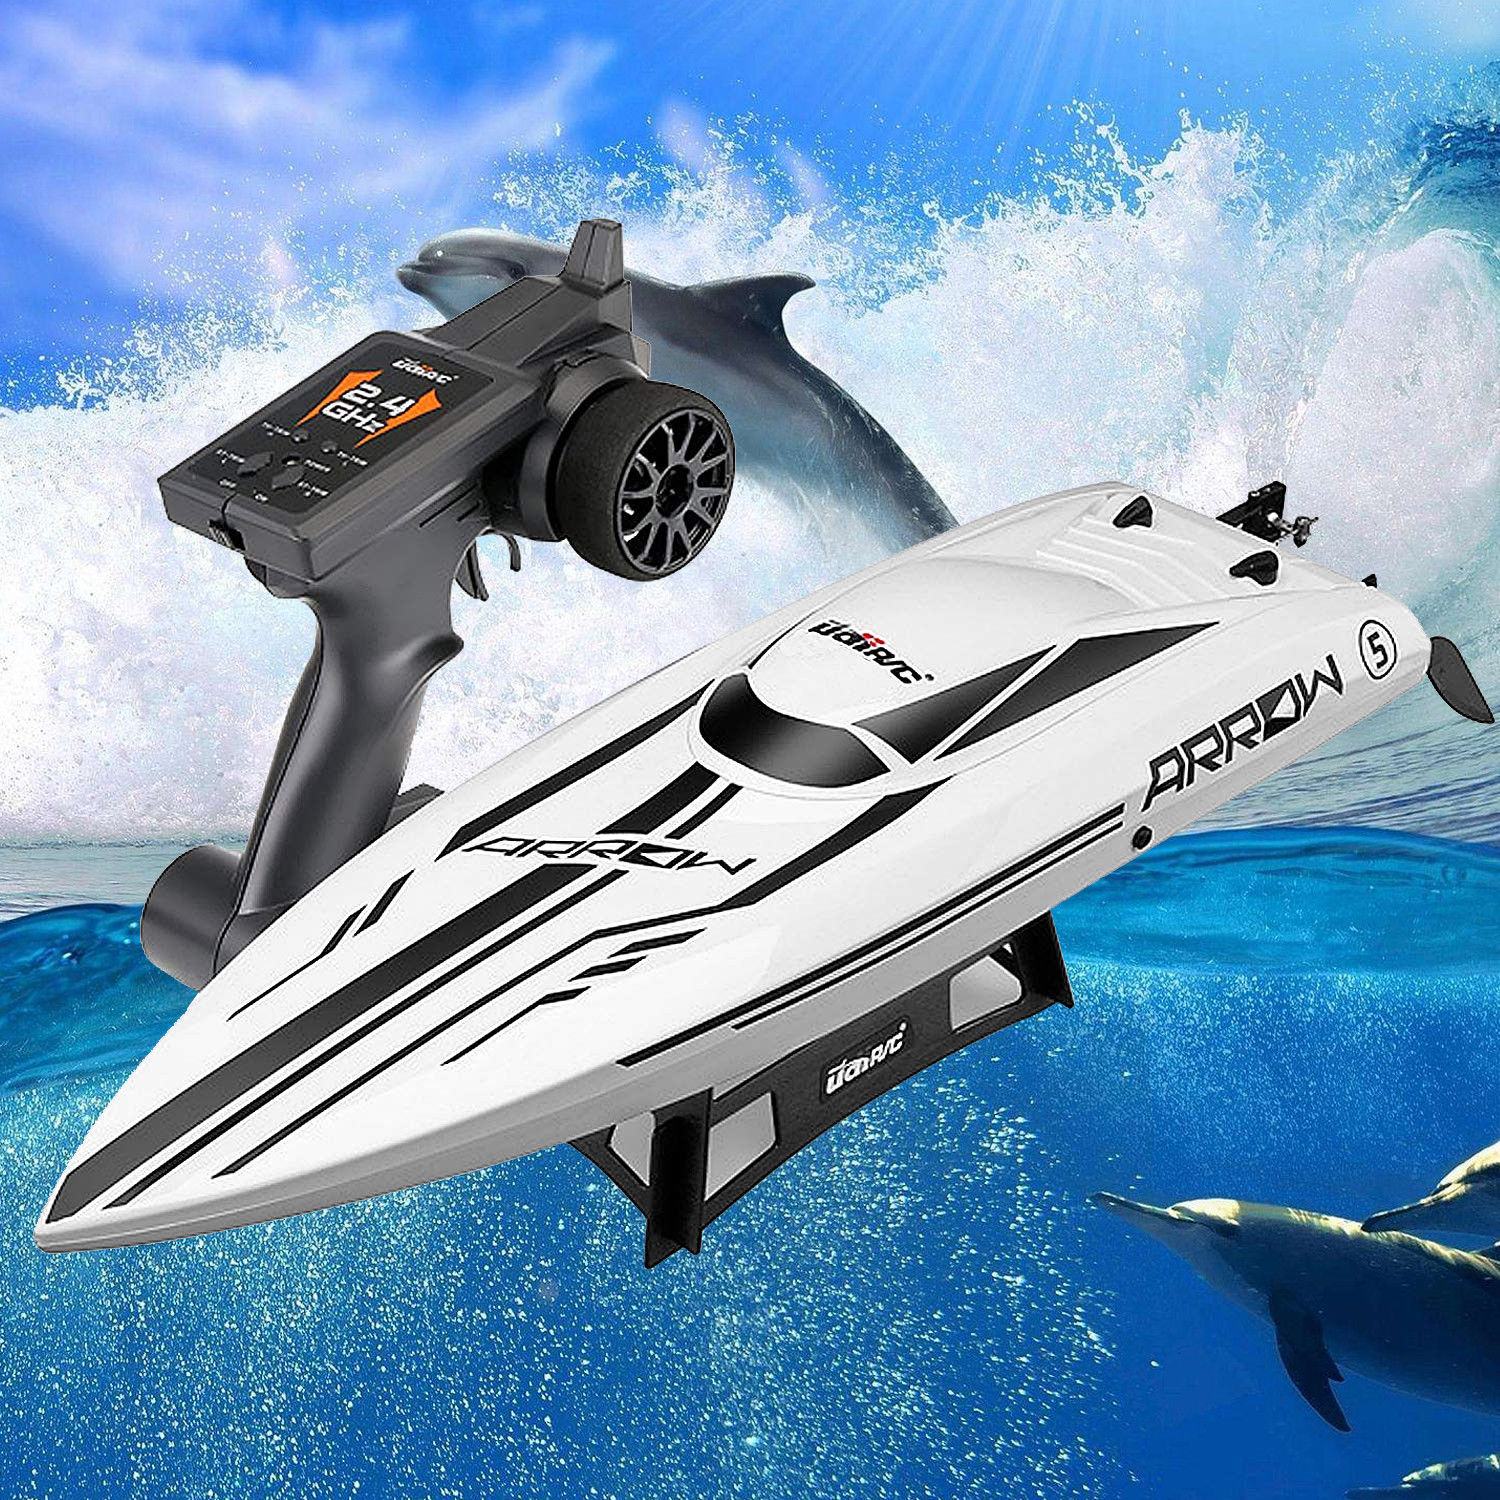 "UDI RC Arrow 25"" Brushless RC Racing Boat 30mph High Speed Electronic Remote Control Boat for Adults Kids"